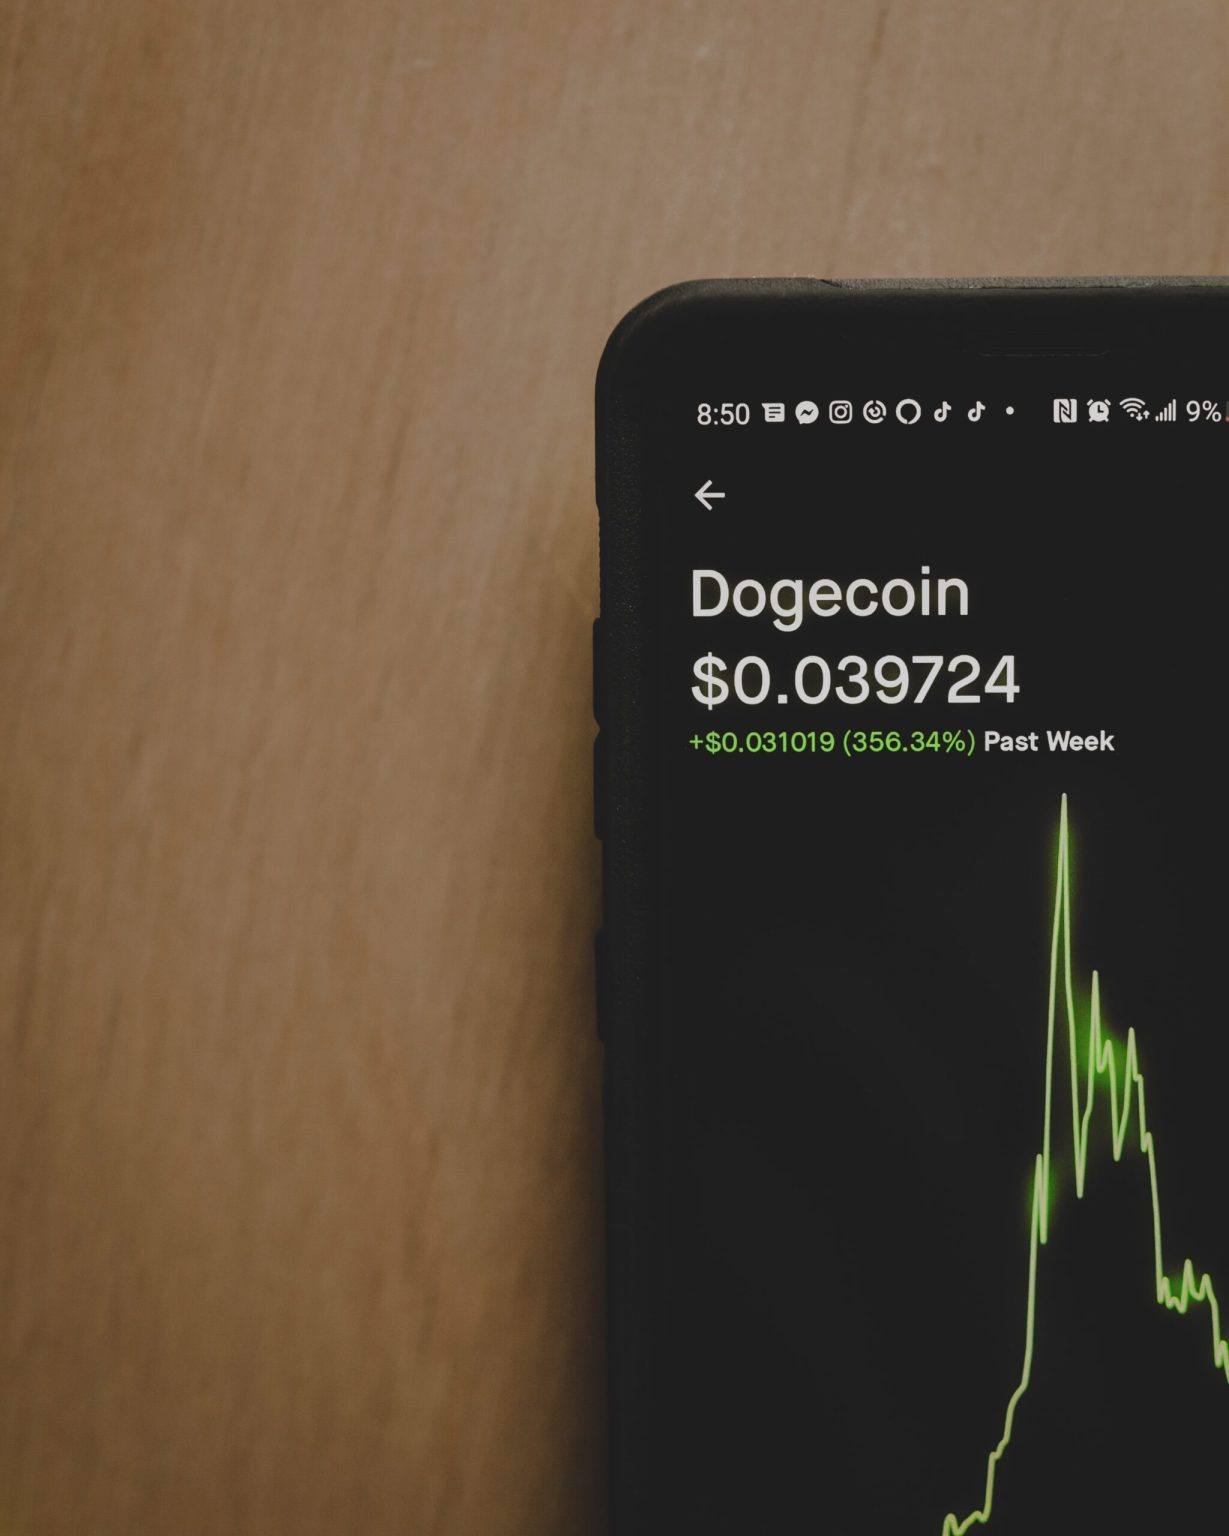 Dogecoin Accounts for 62% of Crypto Revenue for American Financial Firm, Robinhood